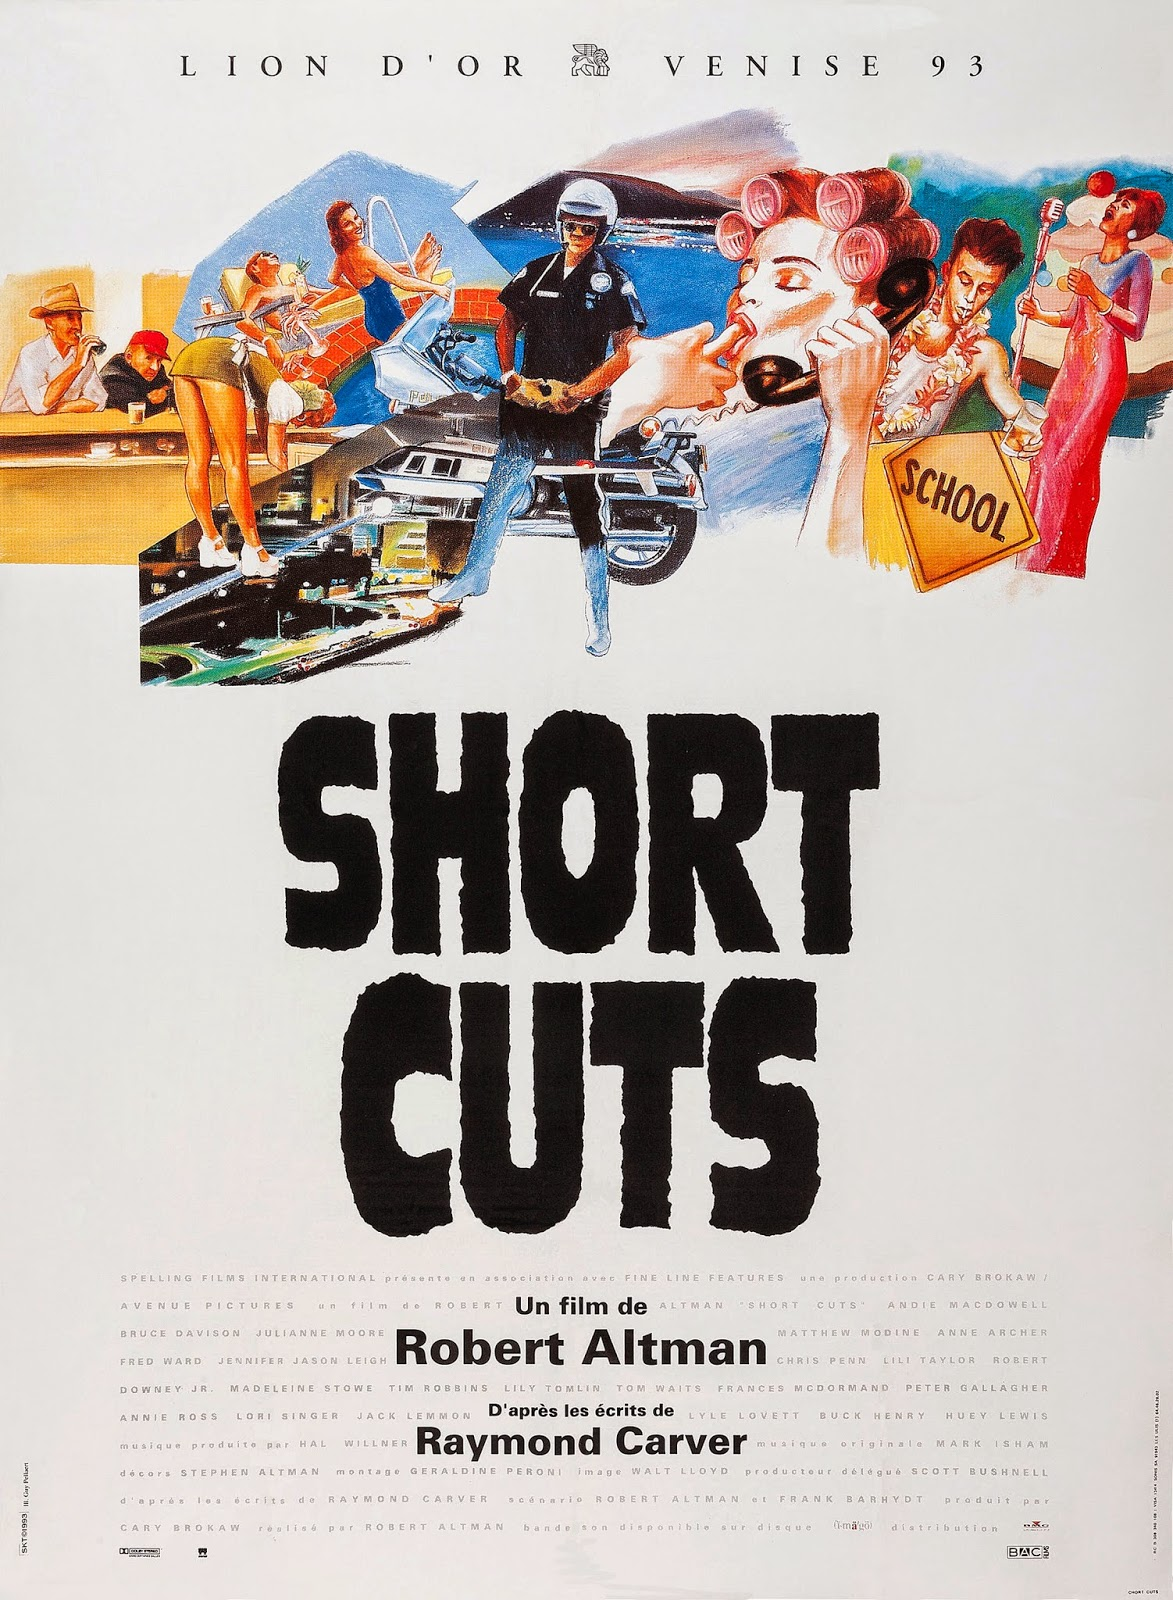 Short Critique Film La Cuts Du v0mNnw8